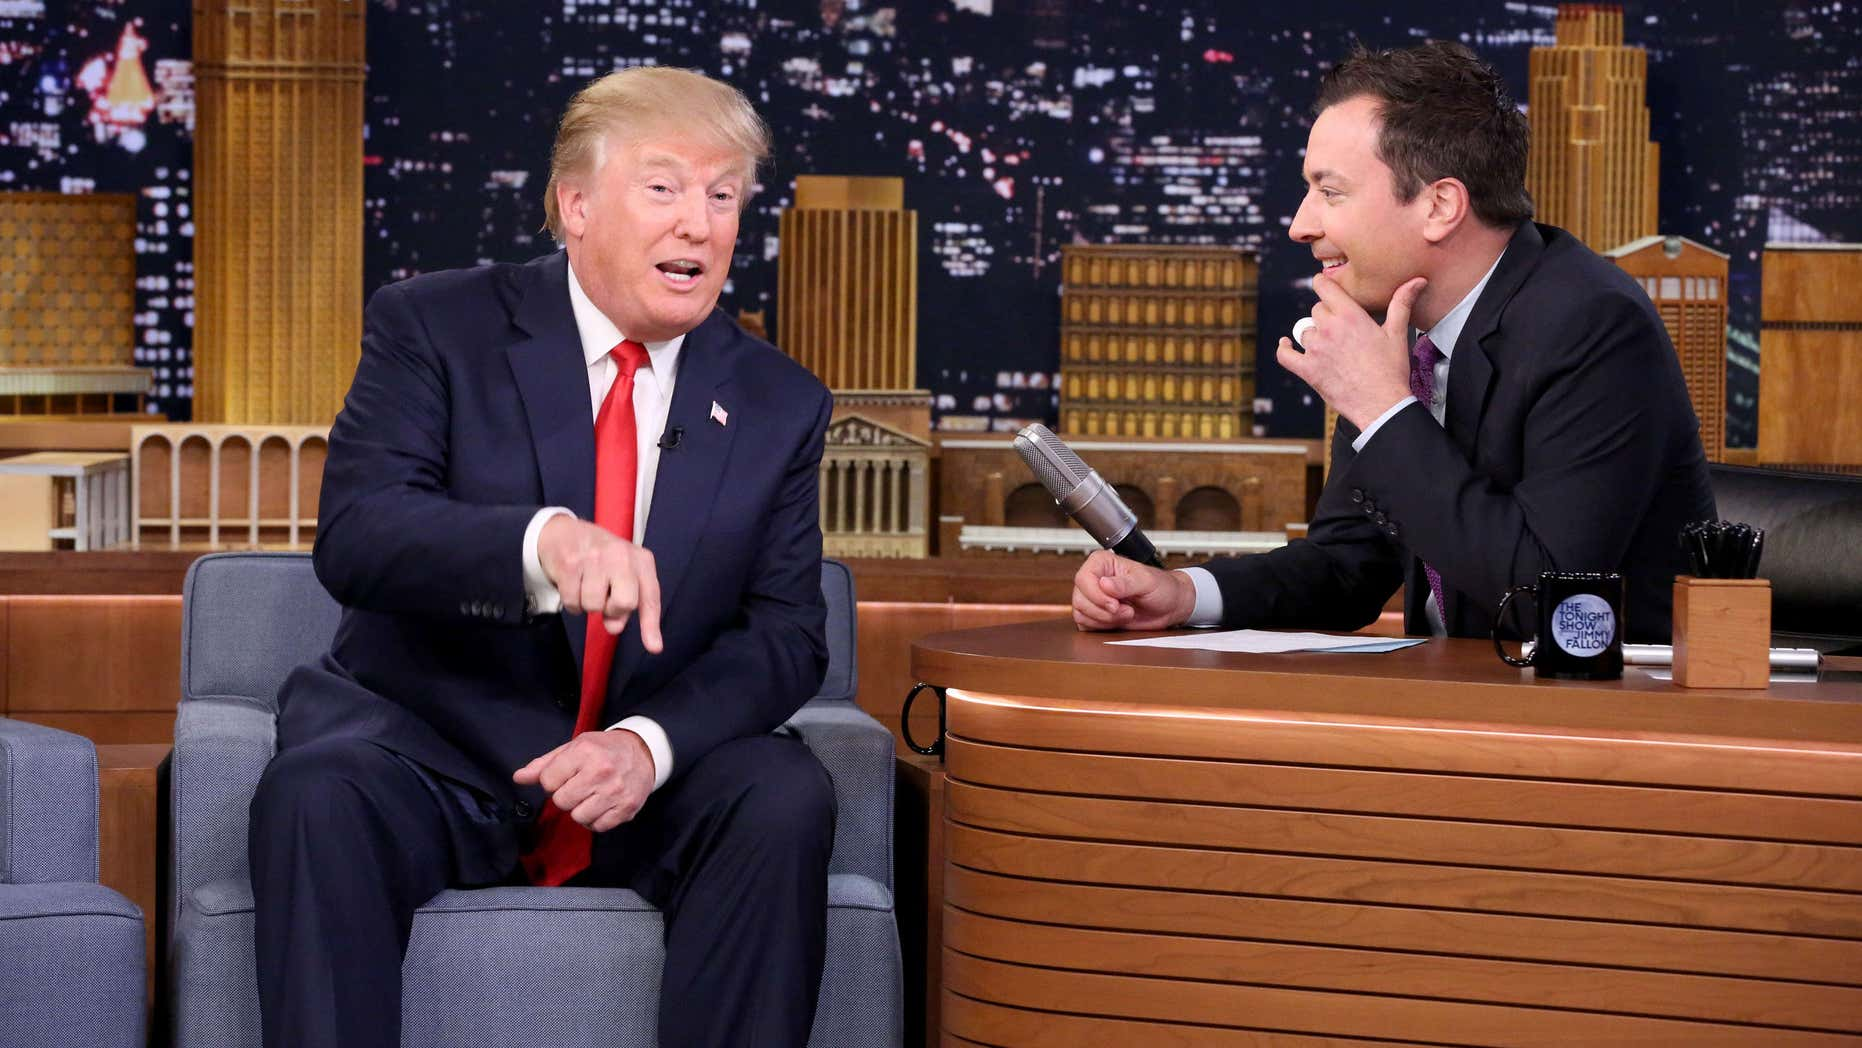 """Sept. 11, 2015: In this image released by NBC, Republican presidential candidate Donald Trump, left, appears with host Jimmy Fallon during a taping of """"The Tonight Show Starring Jimmy Fallon,"""" in New York."""